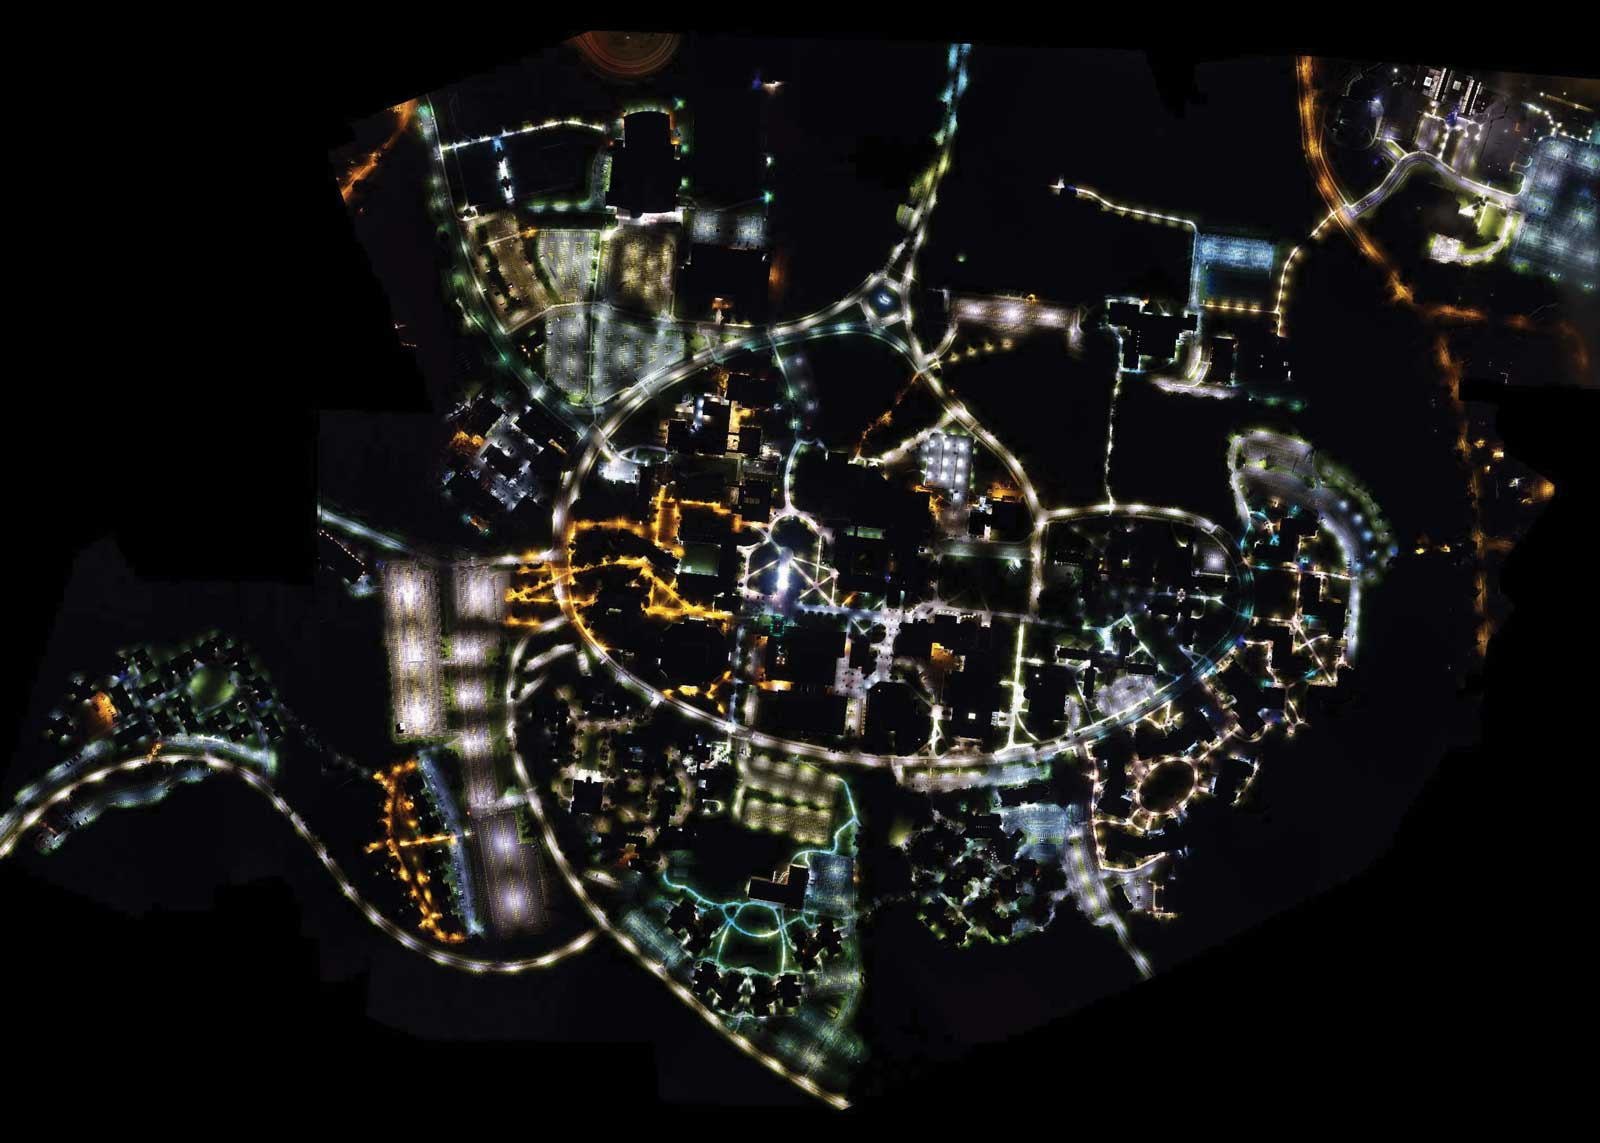 For research on campus safety, Chengbin Deng, associate professor of geography, used a drone to take thousands of aerial images of campus at night, then put them together in a mosaic.